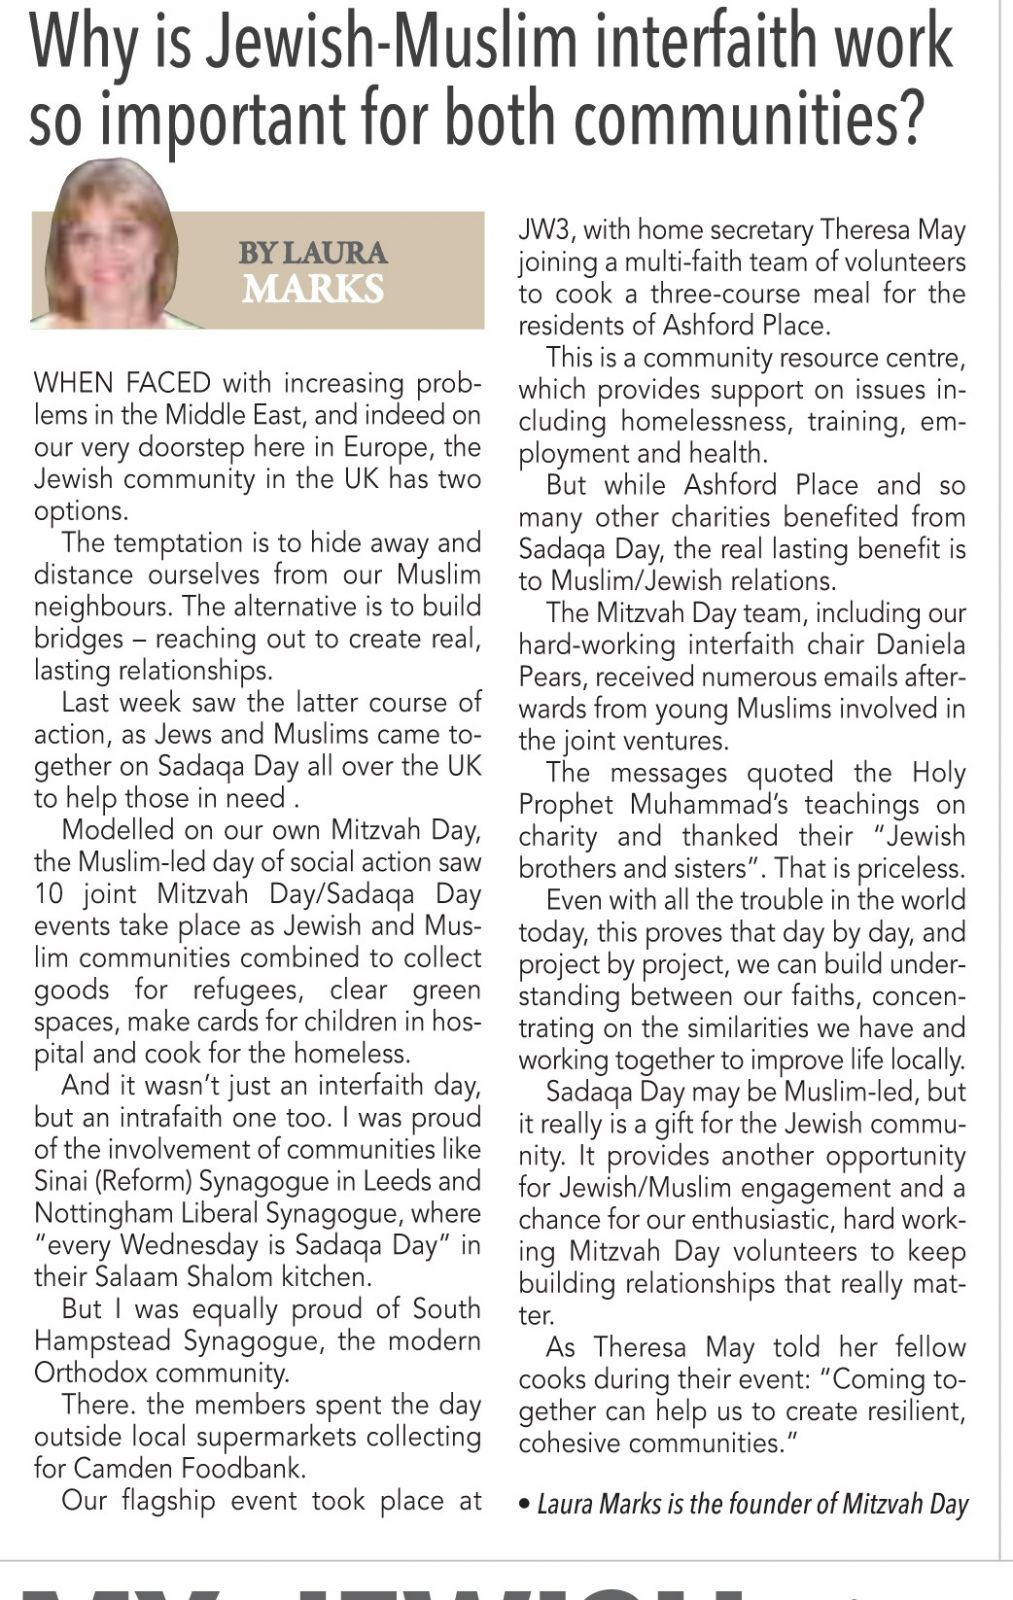 March 2016 - Mitzvah Day founder Laura Marks commentary in The Jewish News